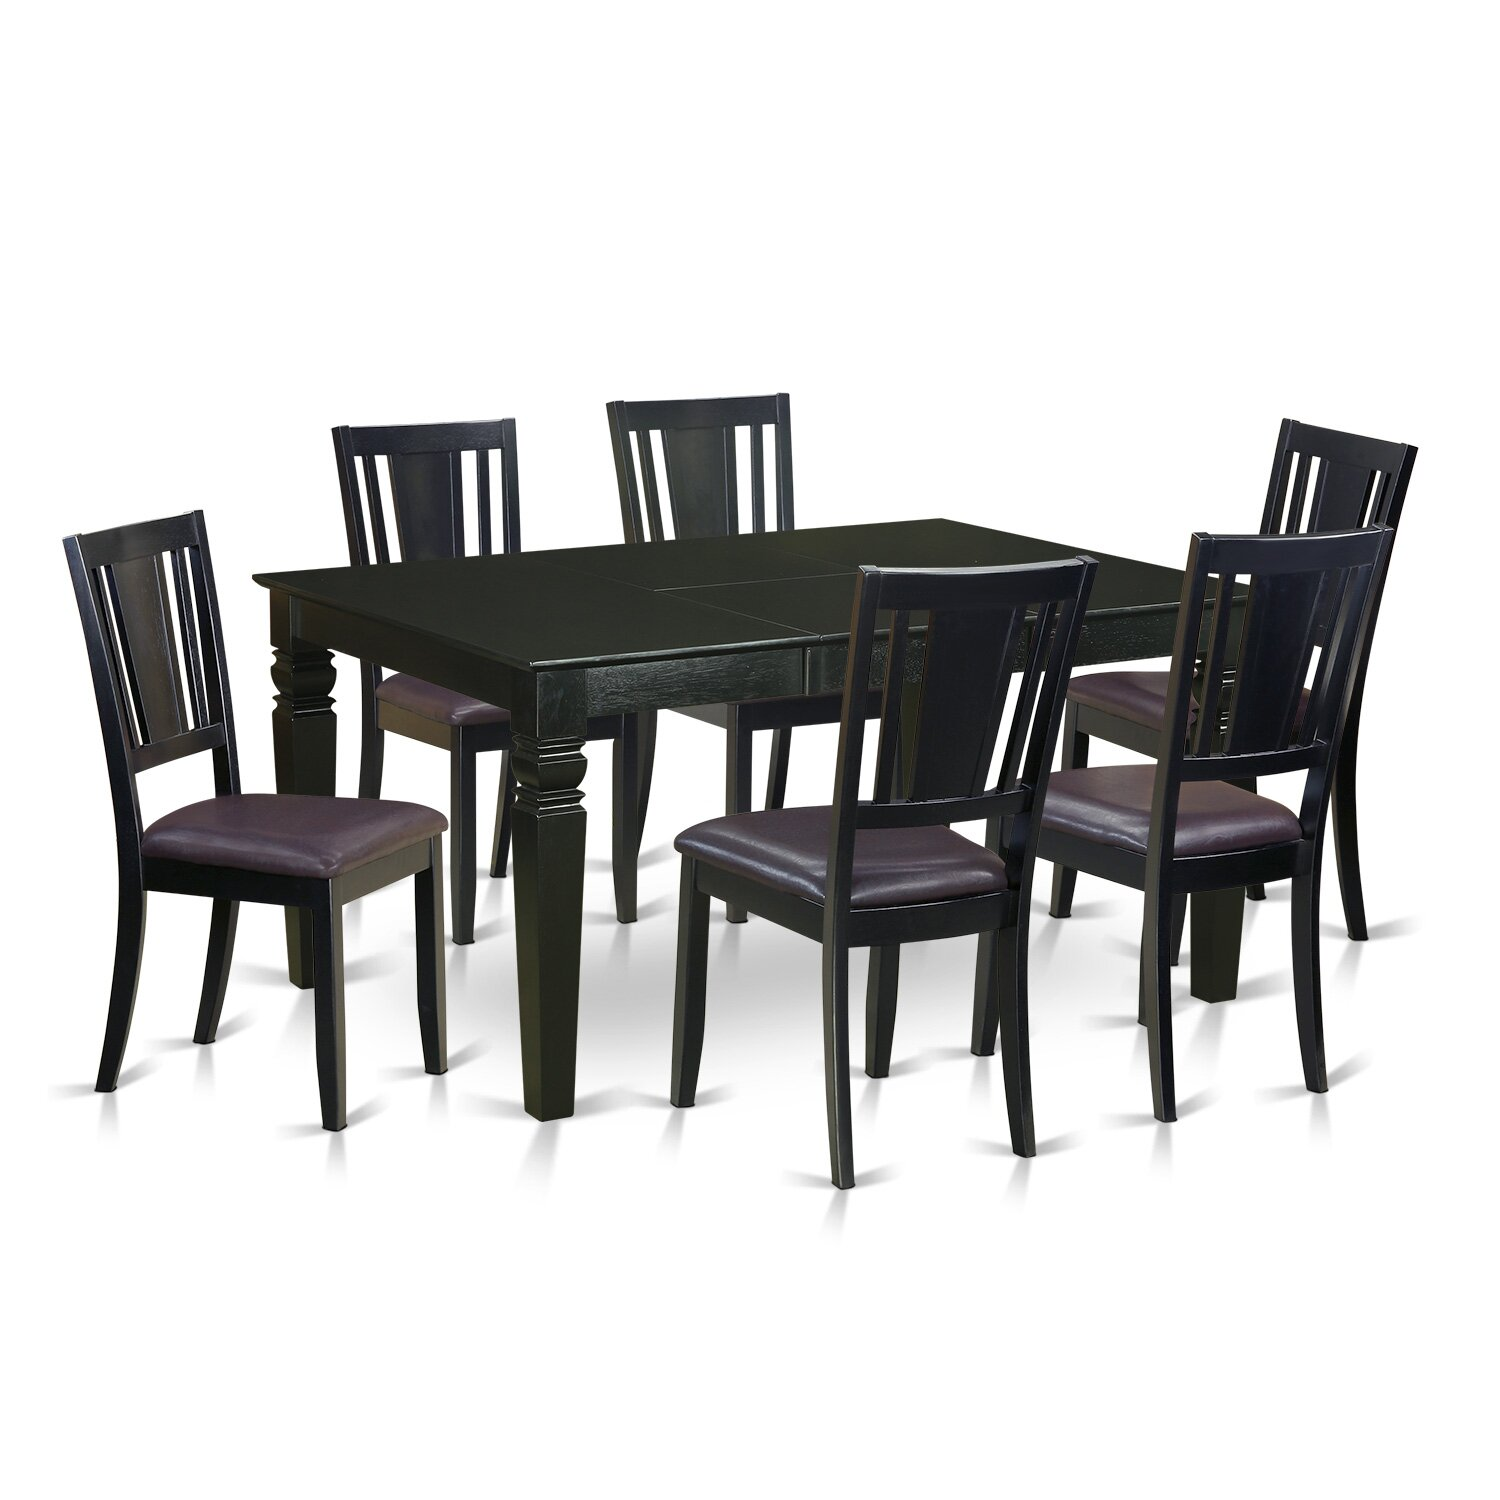 Wooden importers weston 7 piece dining set wayfair for Dining room kitchen sets